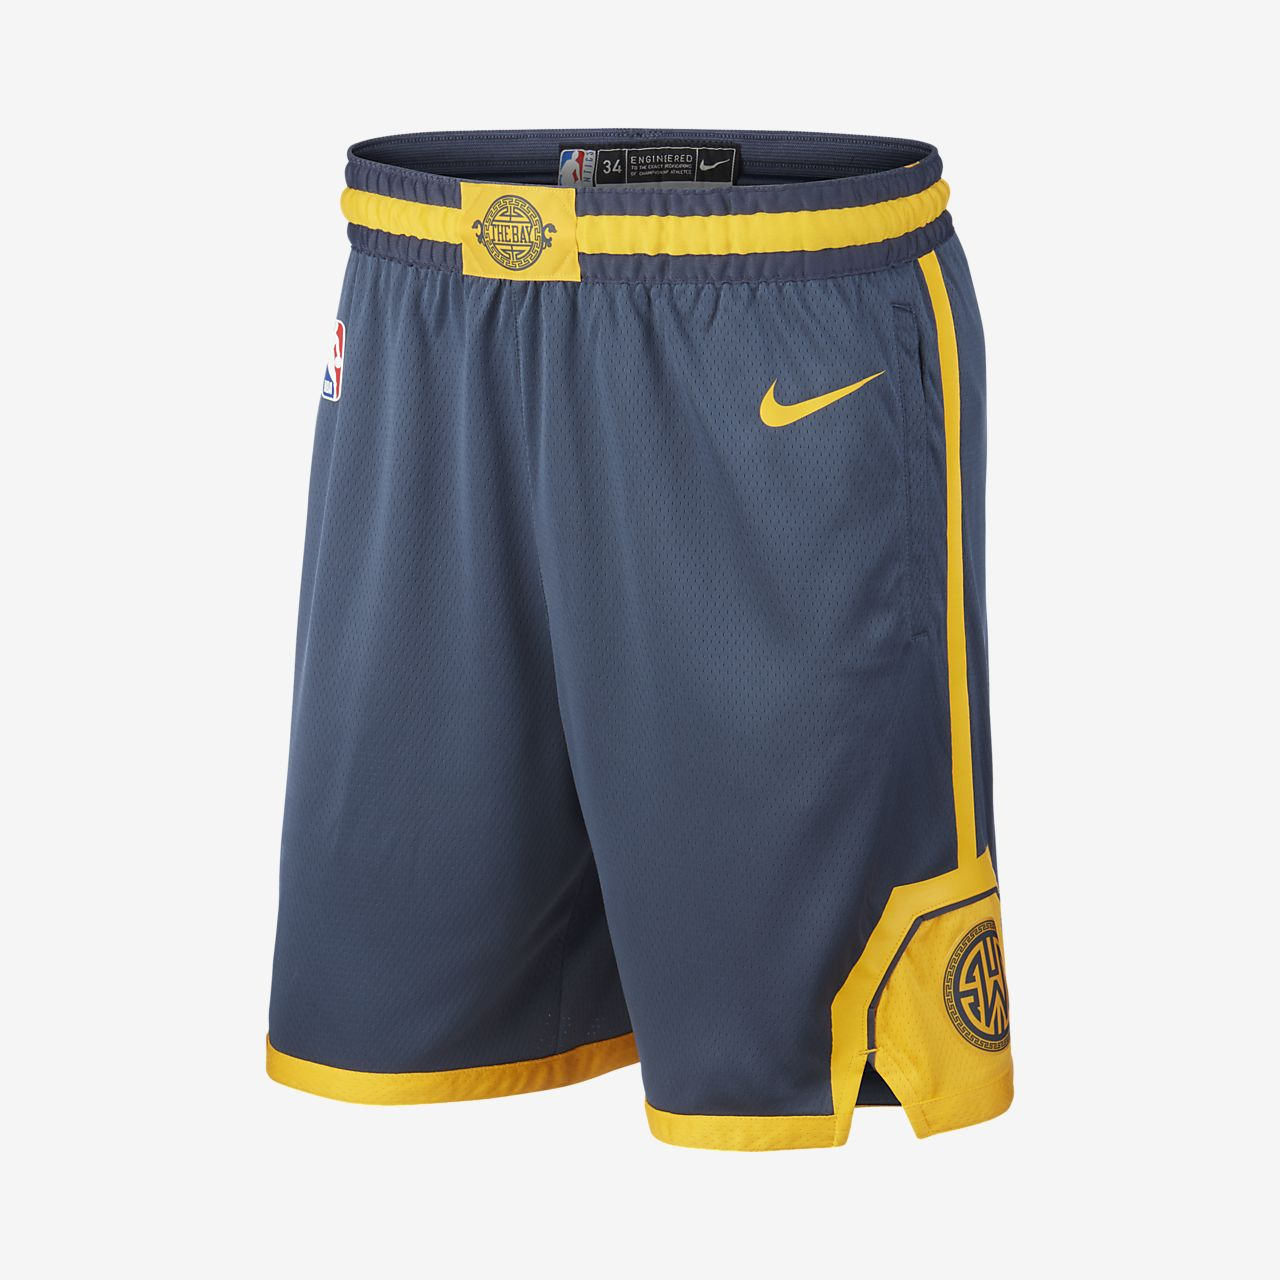 Short Nike NBA Golden State Warriors City Edition Swingman pour Homme